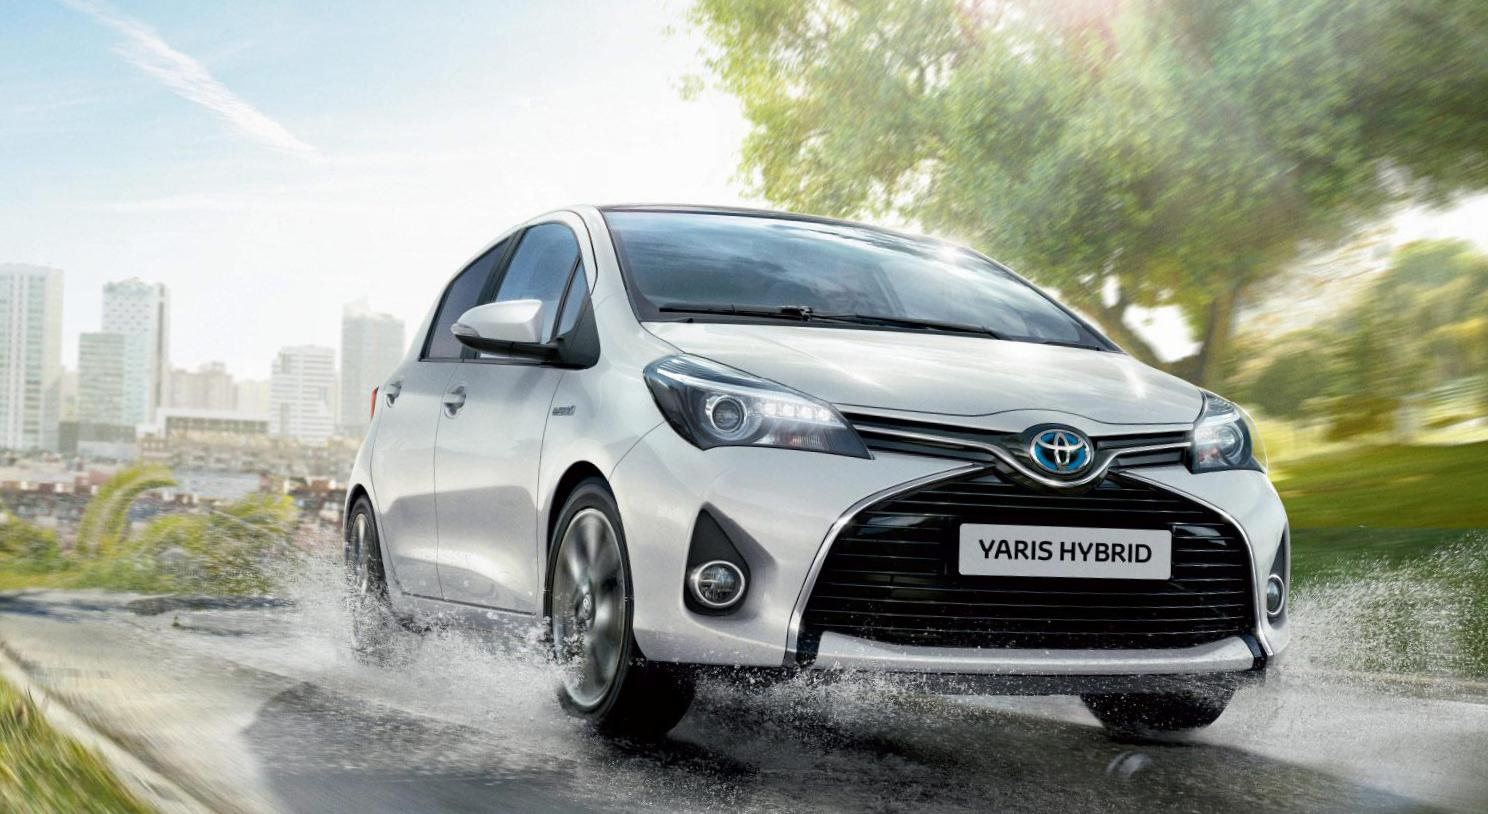 Yaris Hybrid Toyota Model 2017